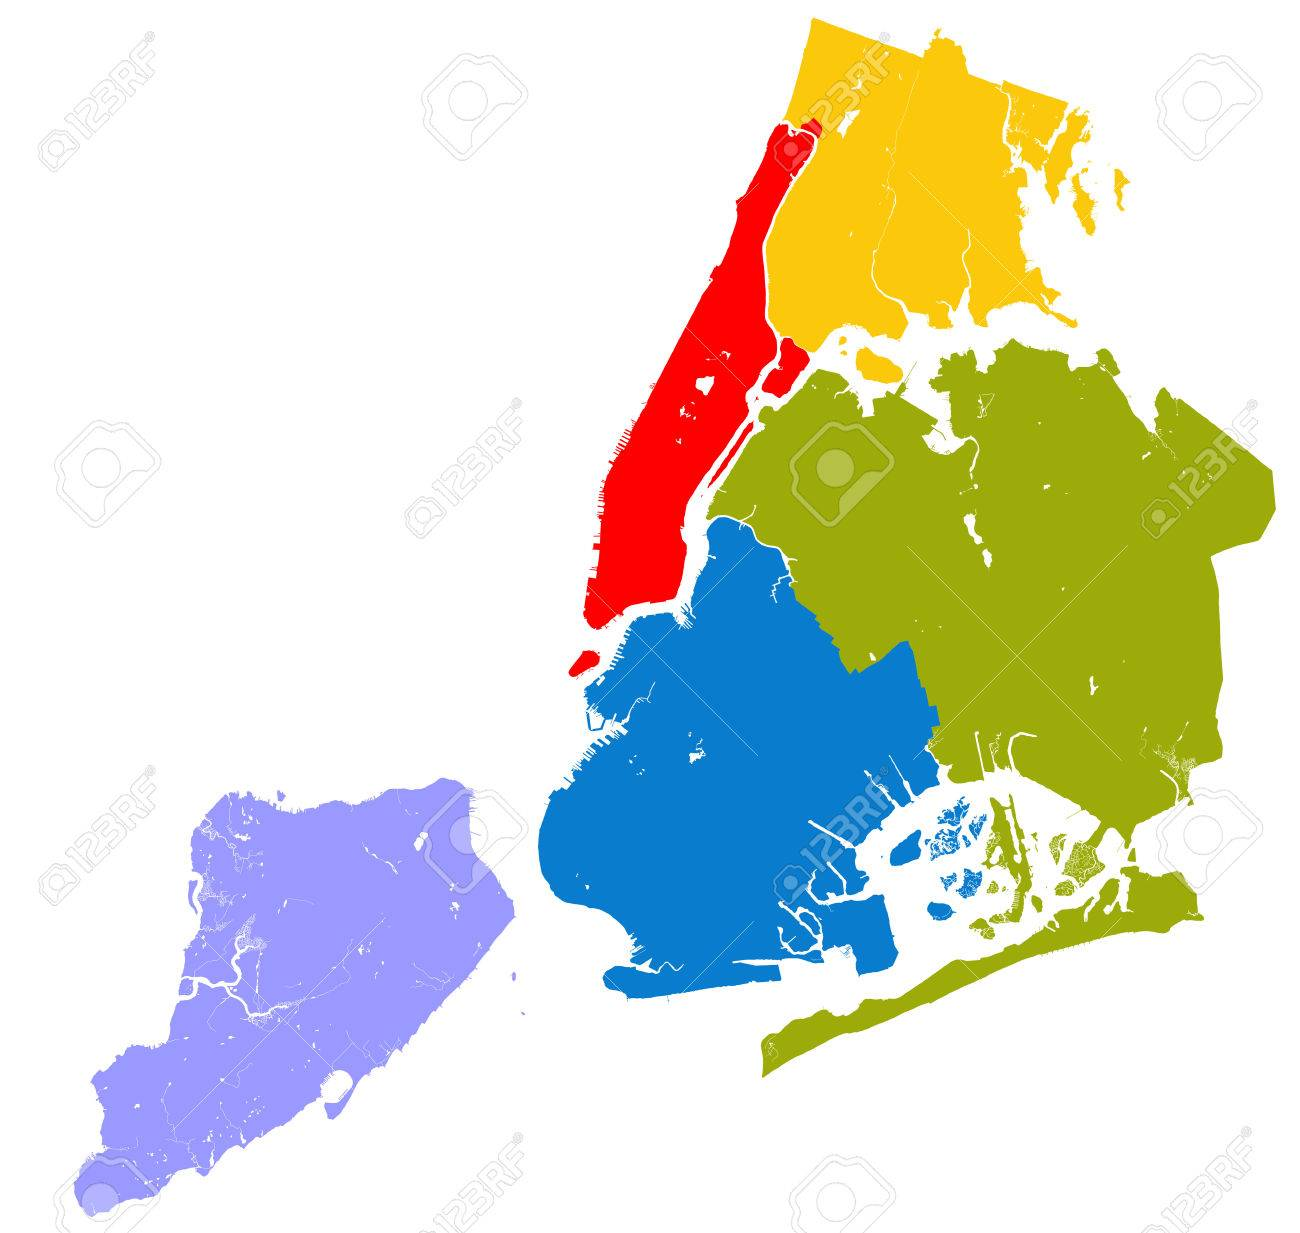 High Resolution Outline Map Of New York City With Nyc Boroughs